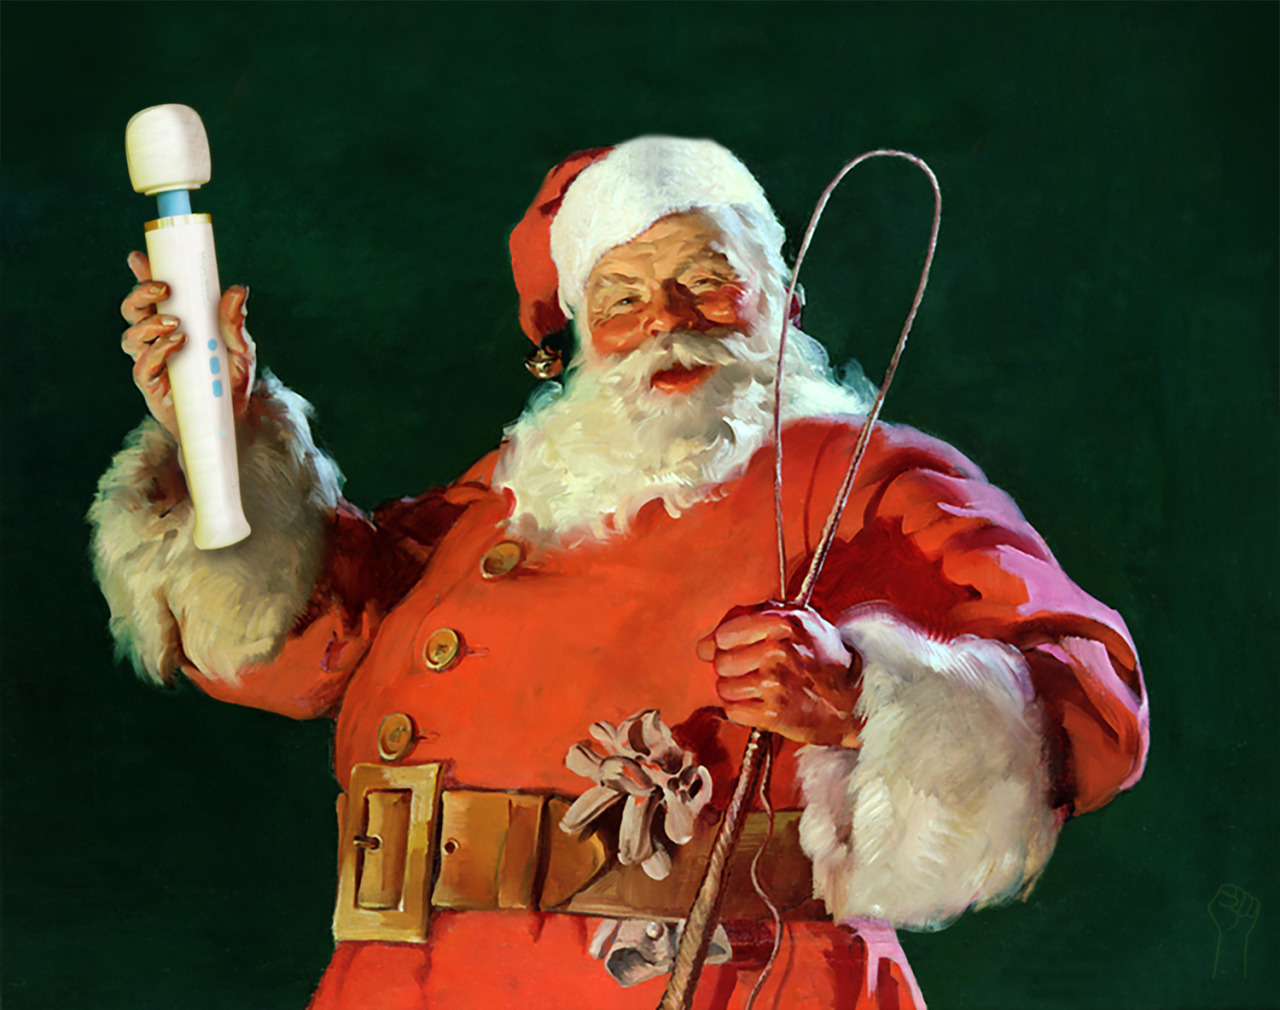 magic wand santa claus